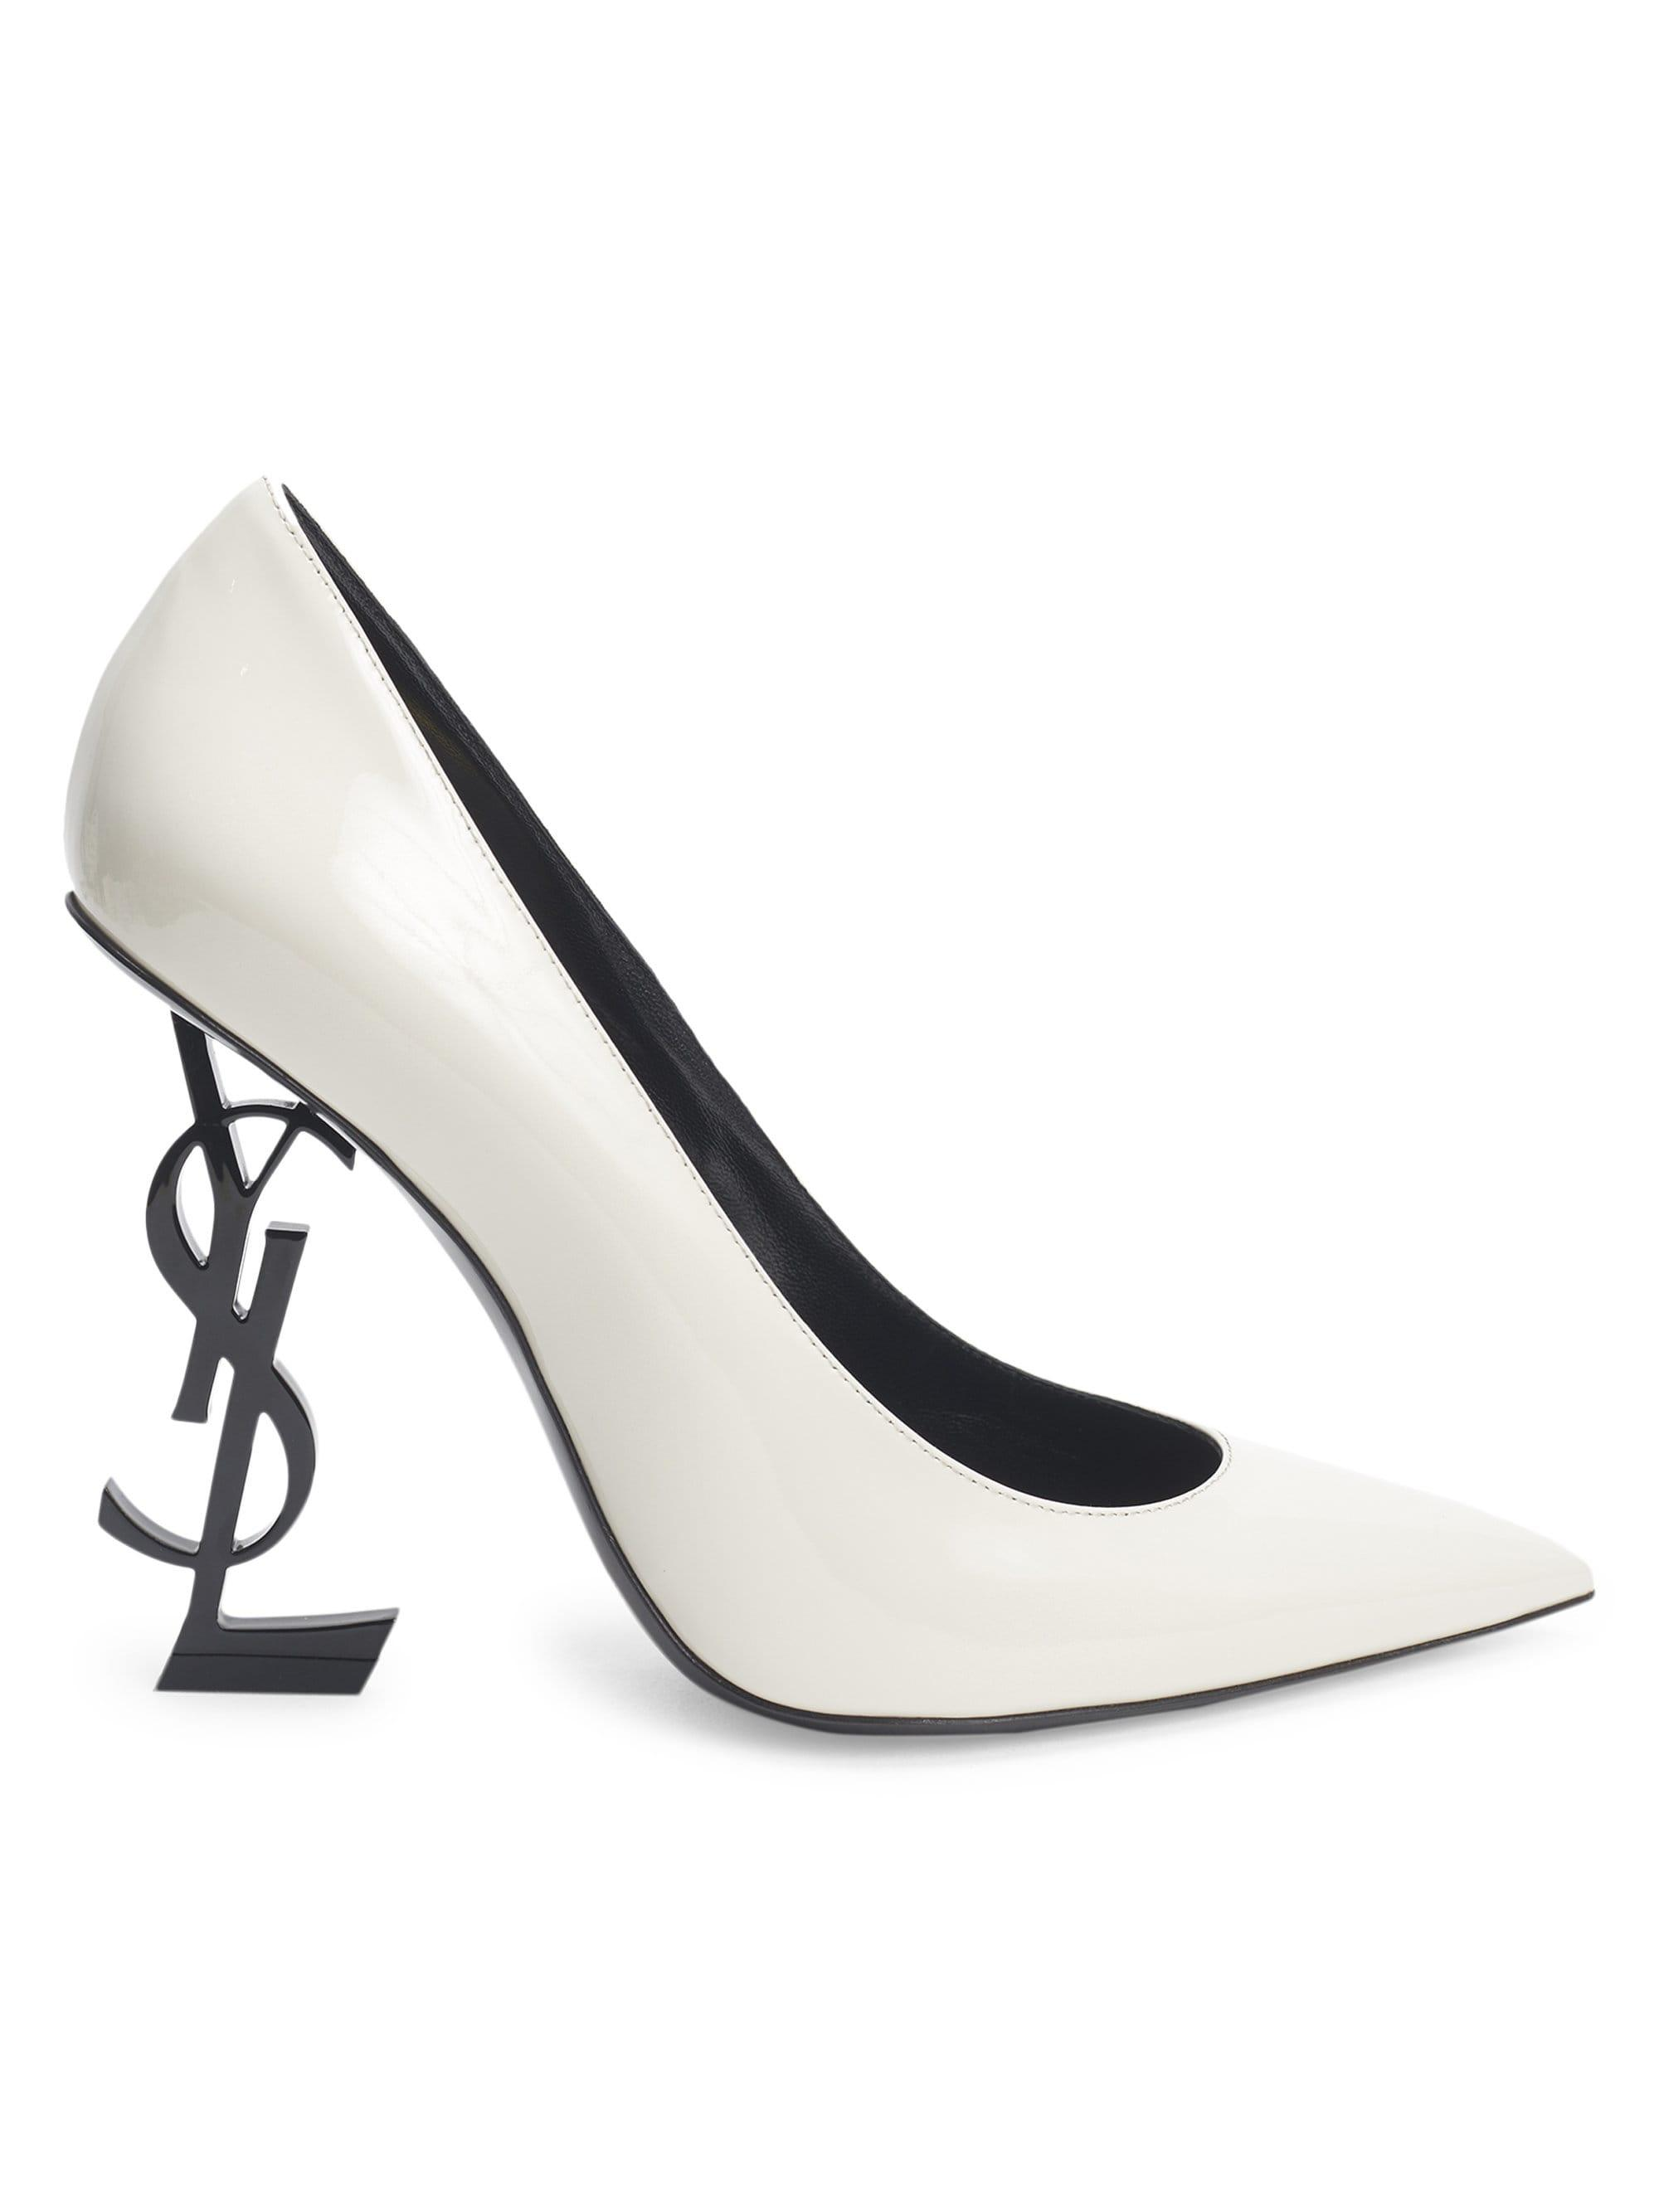 Lyst - Saint Laurent Women s Opyum Point Toe Leather Pumps - Latte ... 75542872cc